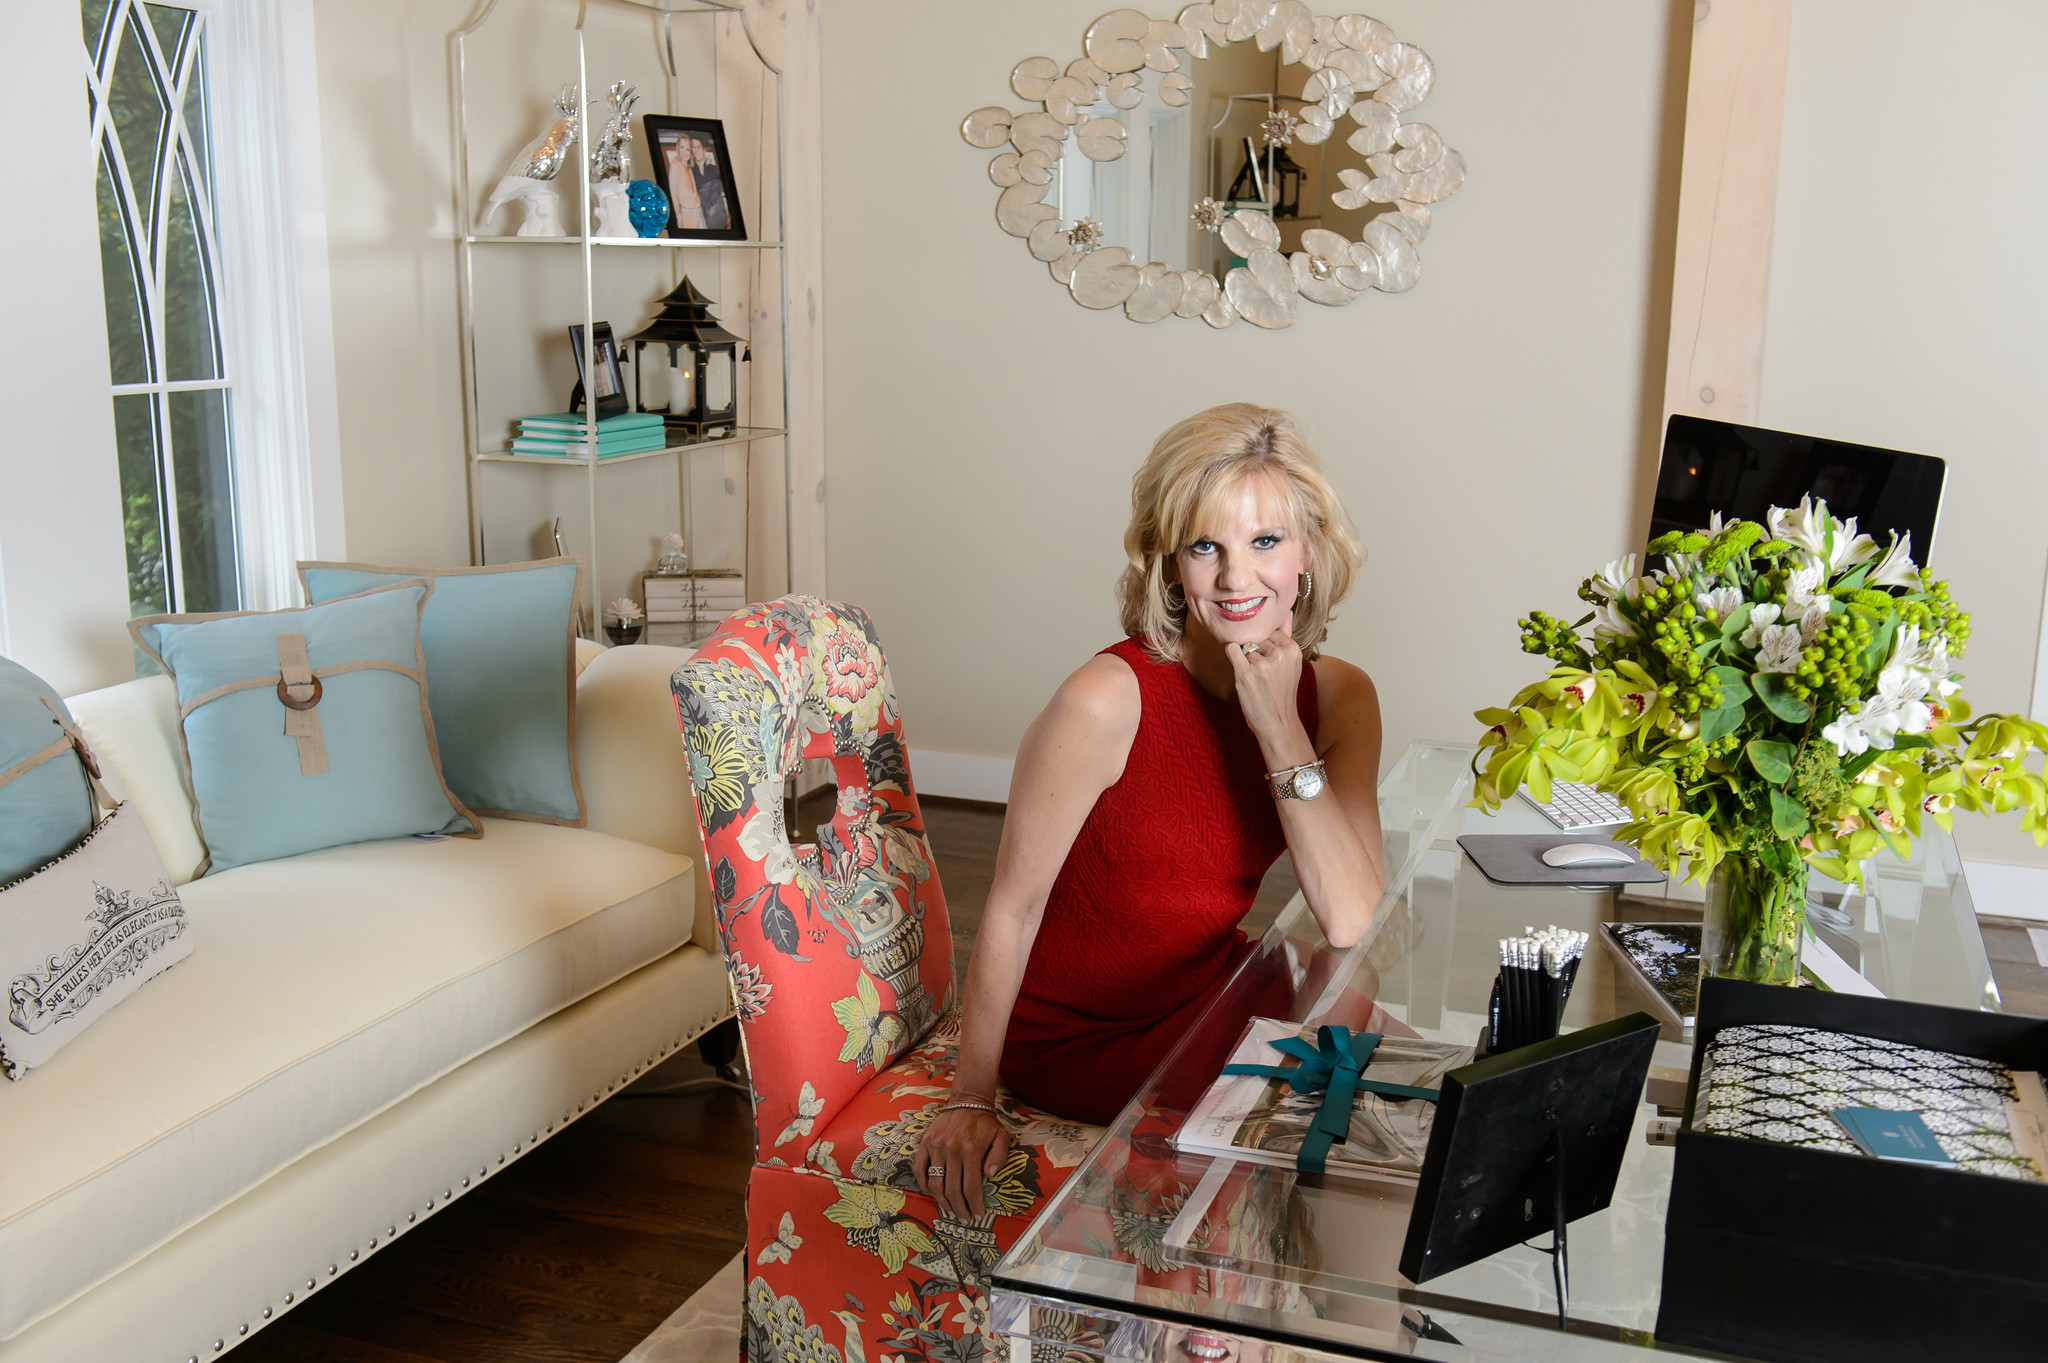 Historic glenelg church sees new life as an interior design showroom and office howard county times